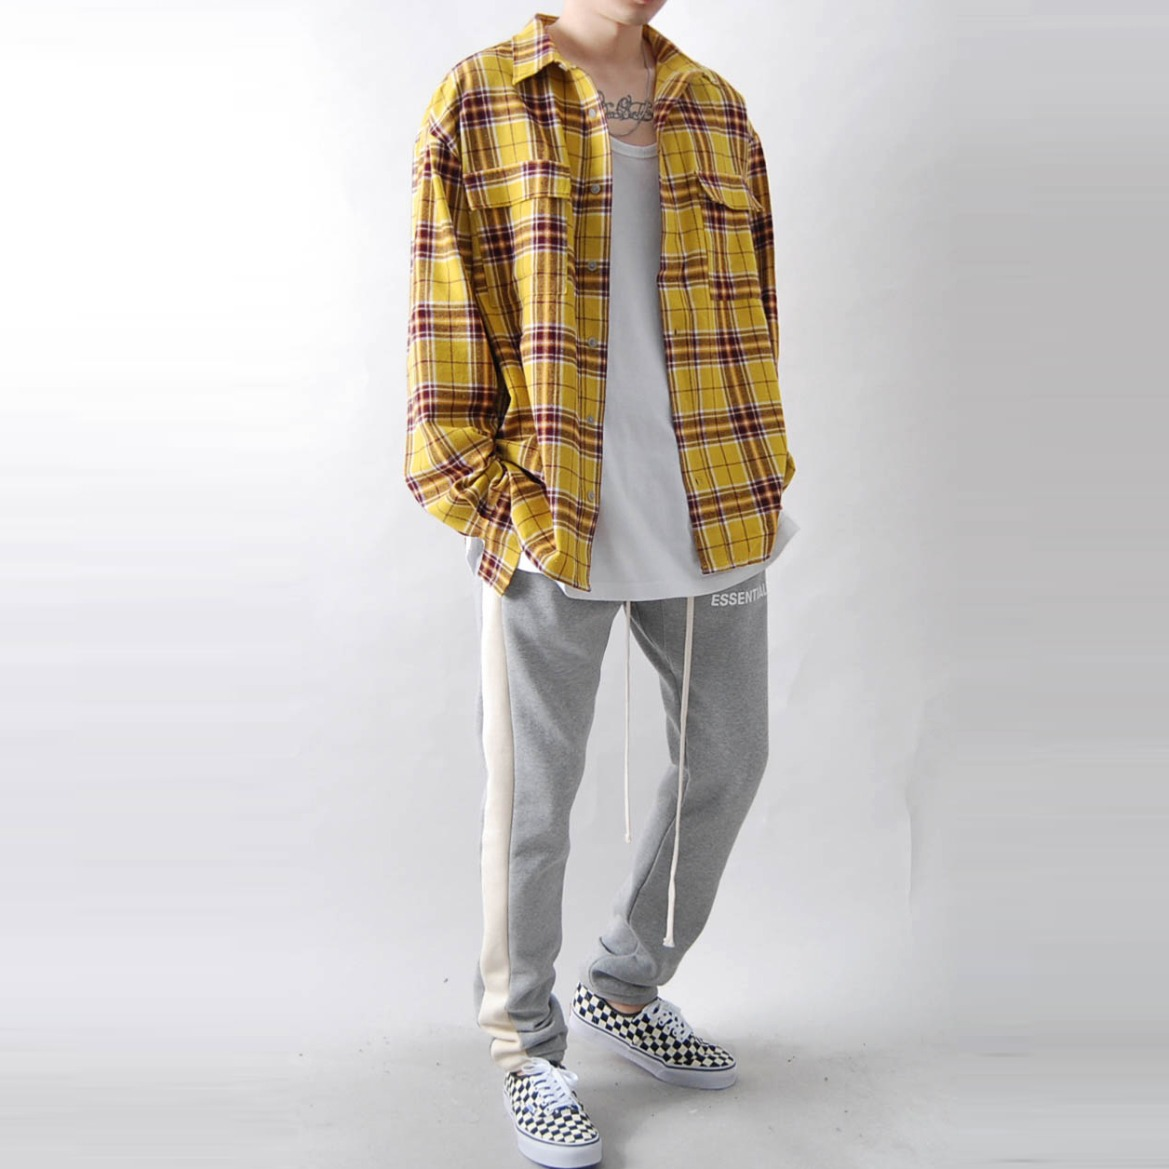 19 S/S 피어 오버핏 체크셔츠 - FEAR OVER CHECK SHIRT (2 COLOR)